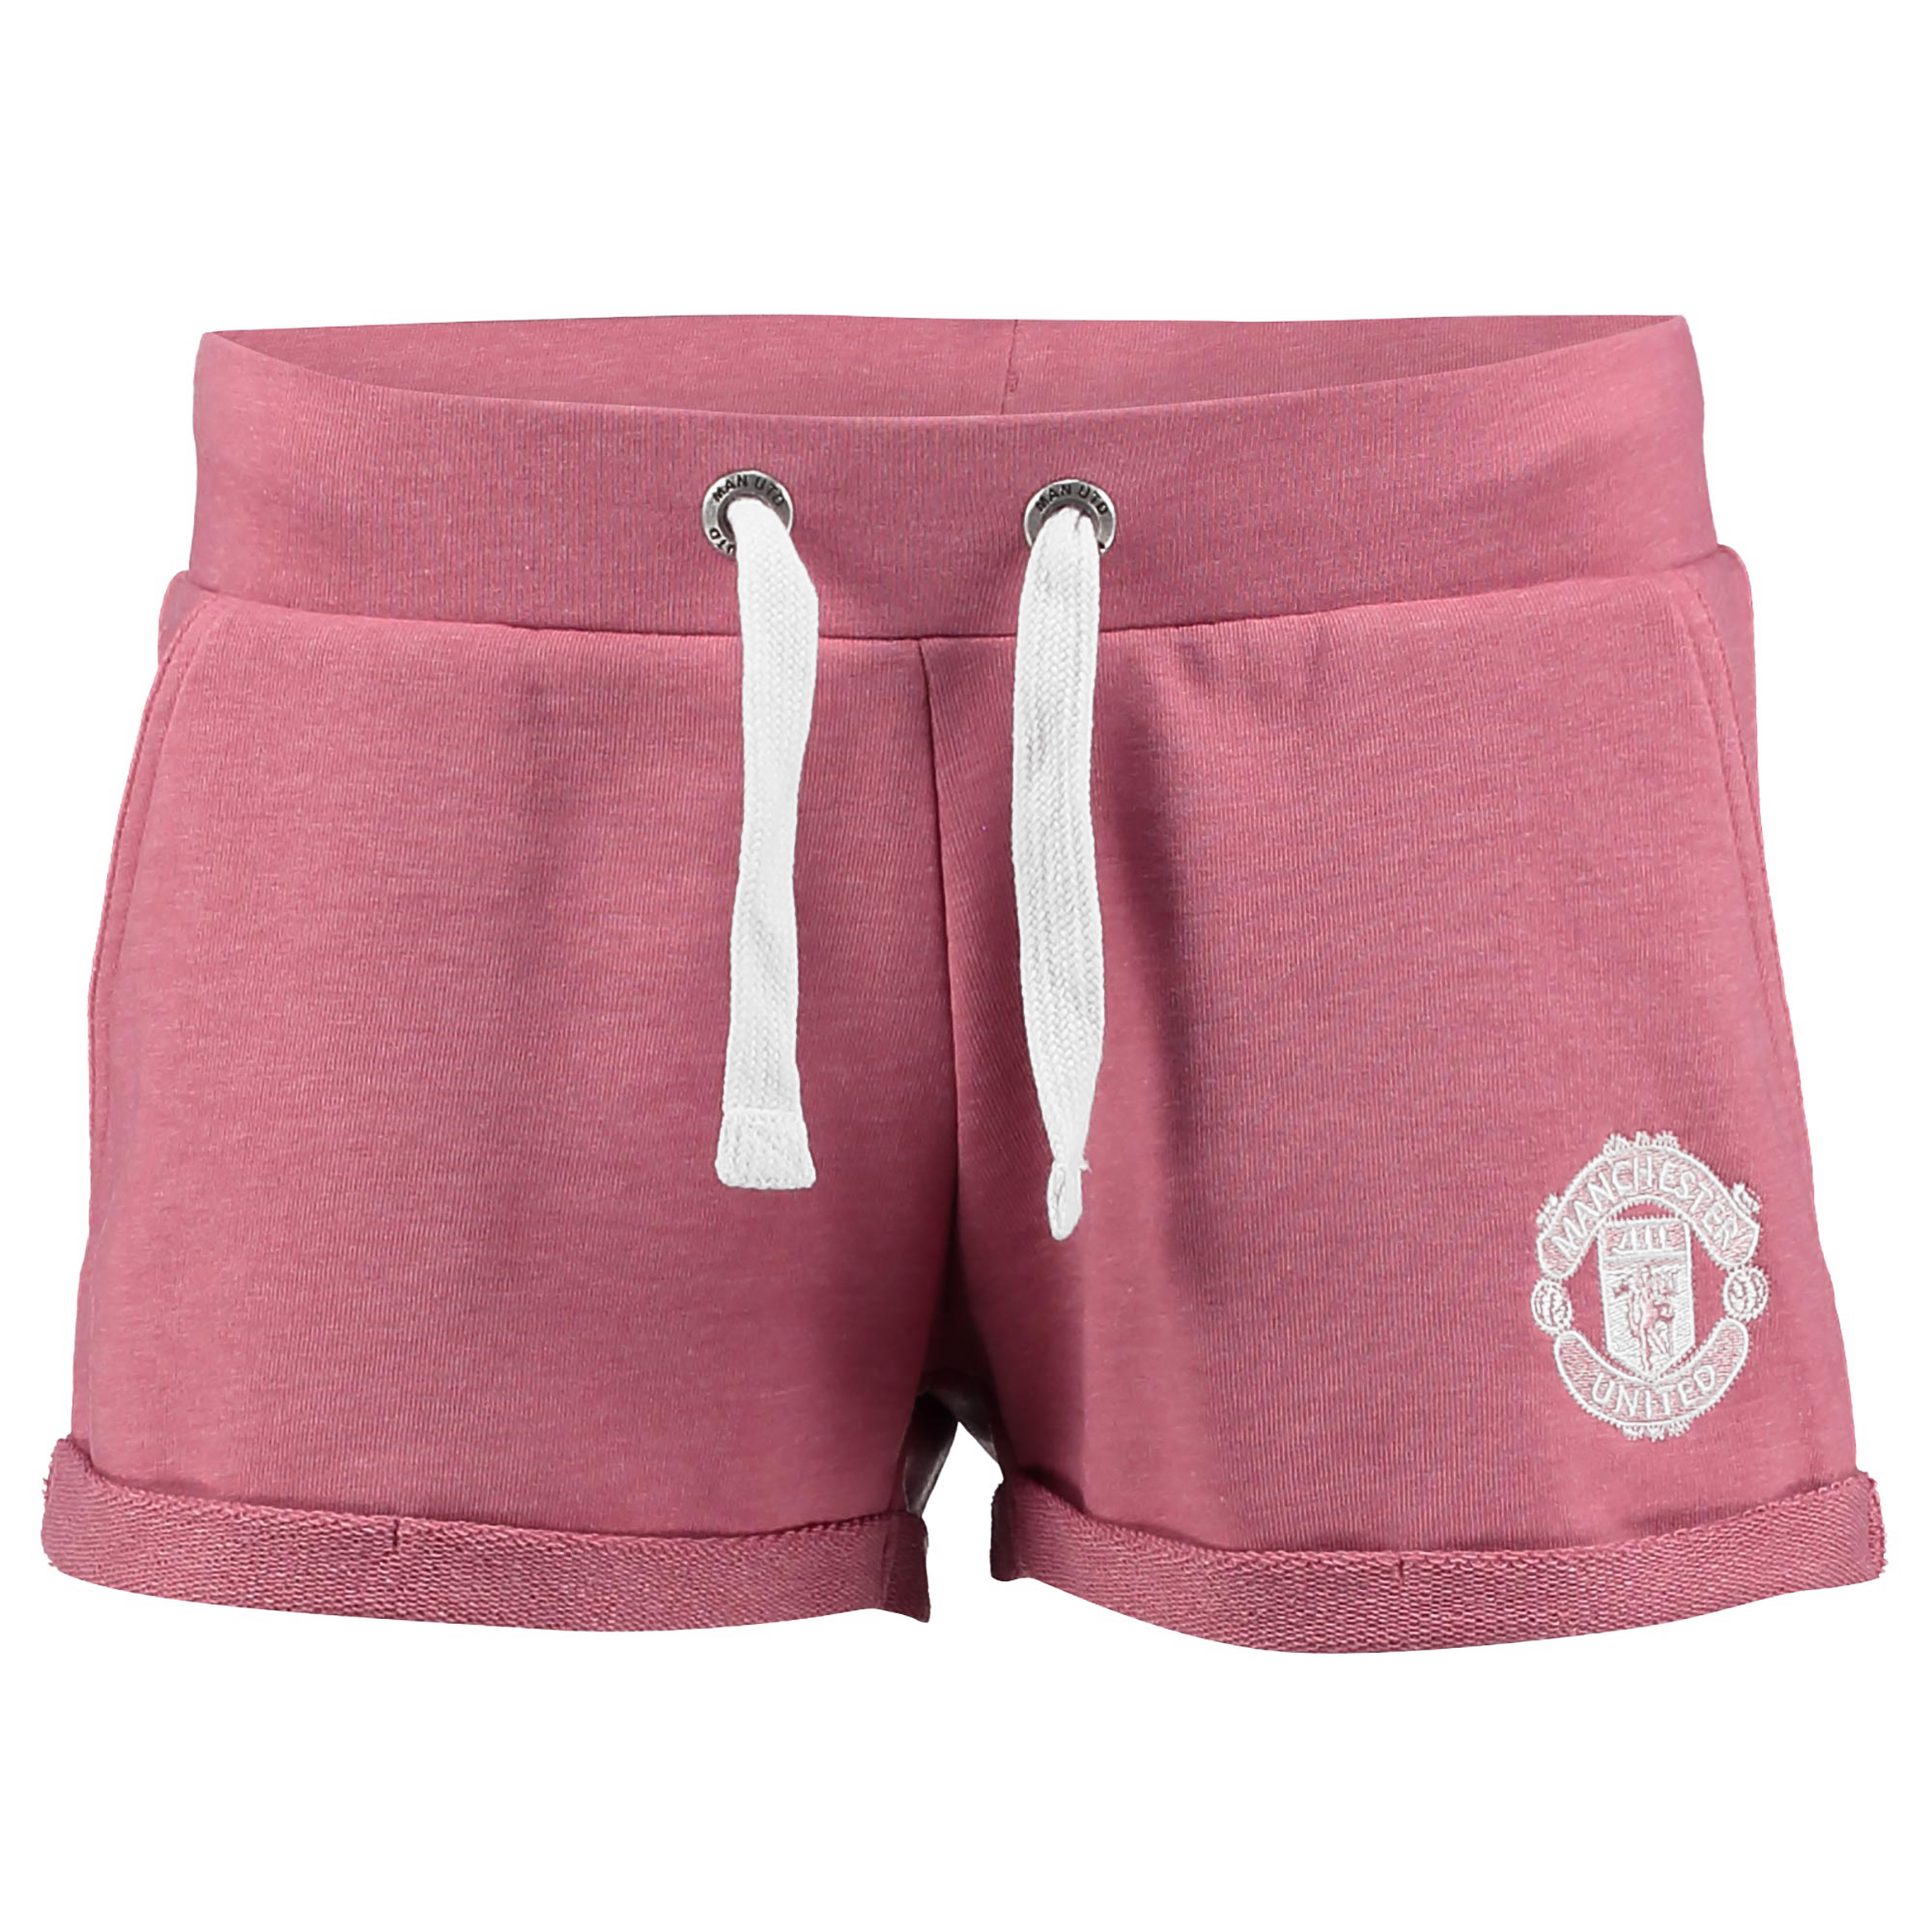 Manchester United Casual Shorts - Pink Marl - Womens